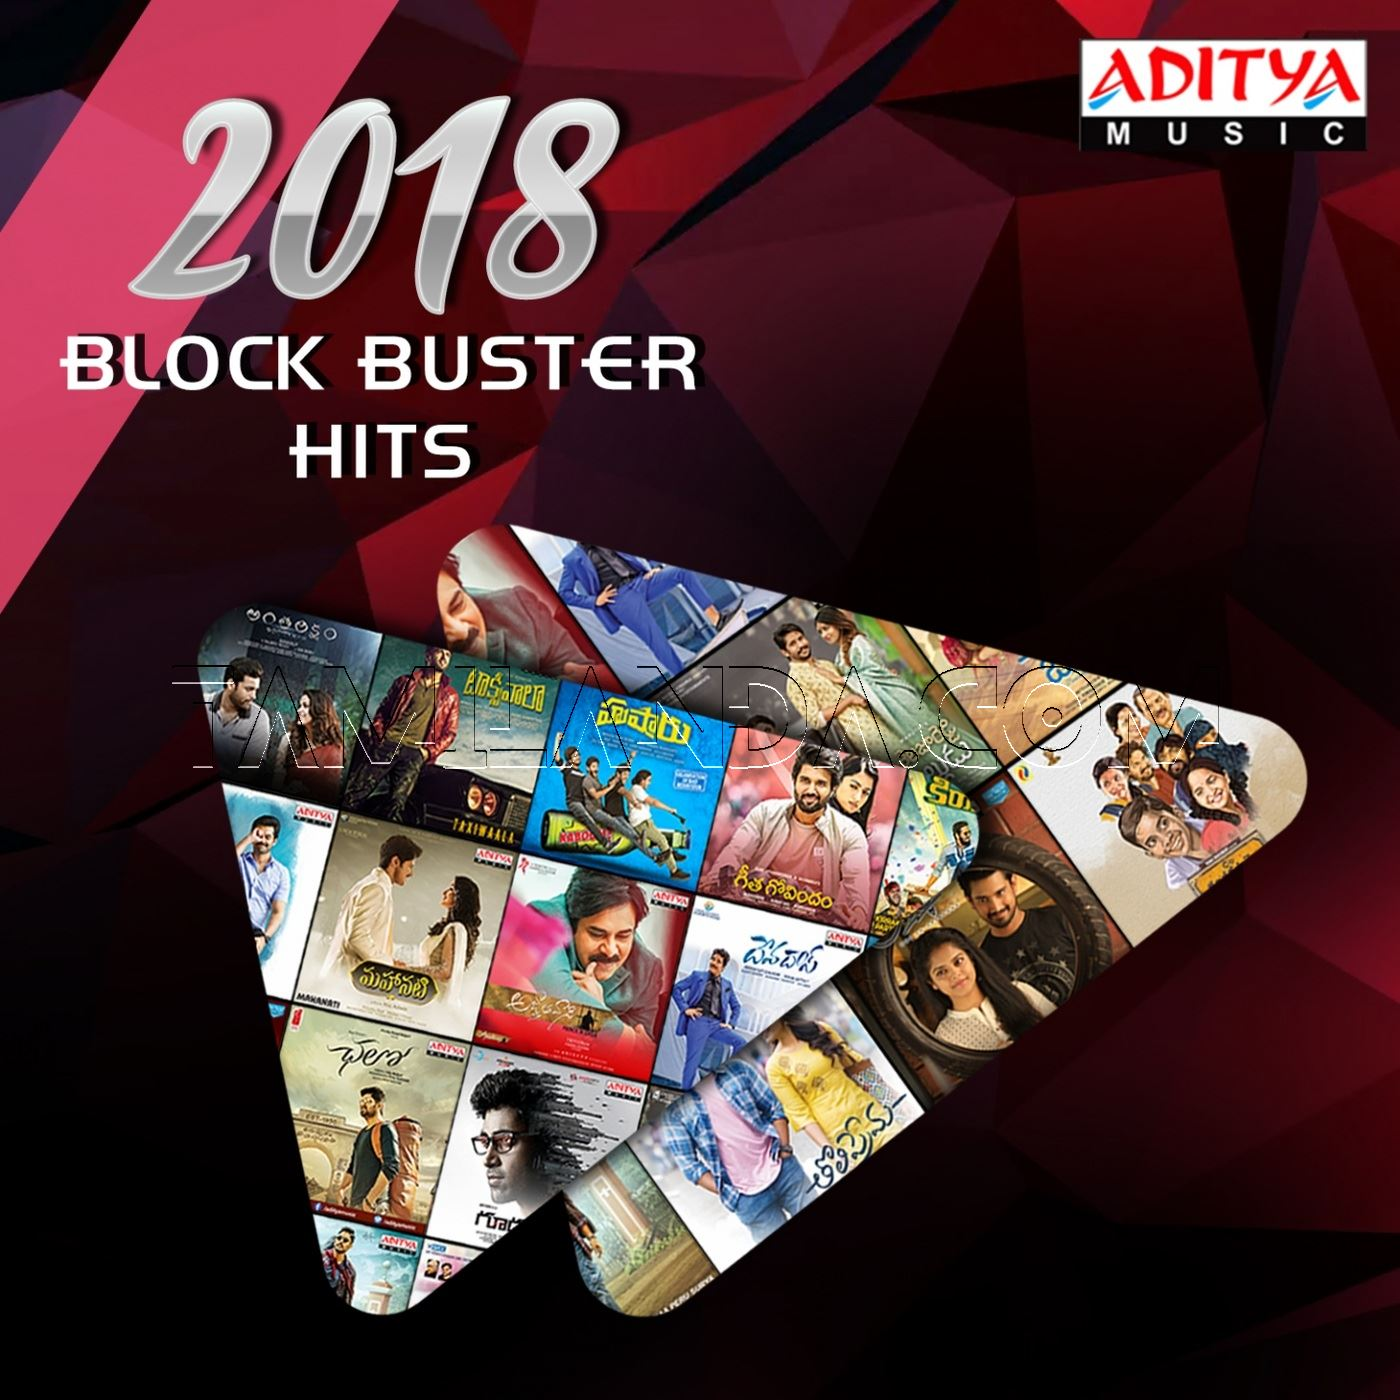 2018 Block Buster Hits FLAC Songs [Telugu]